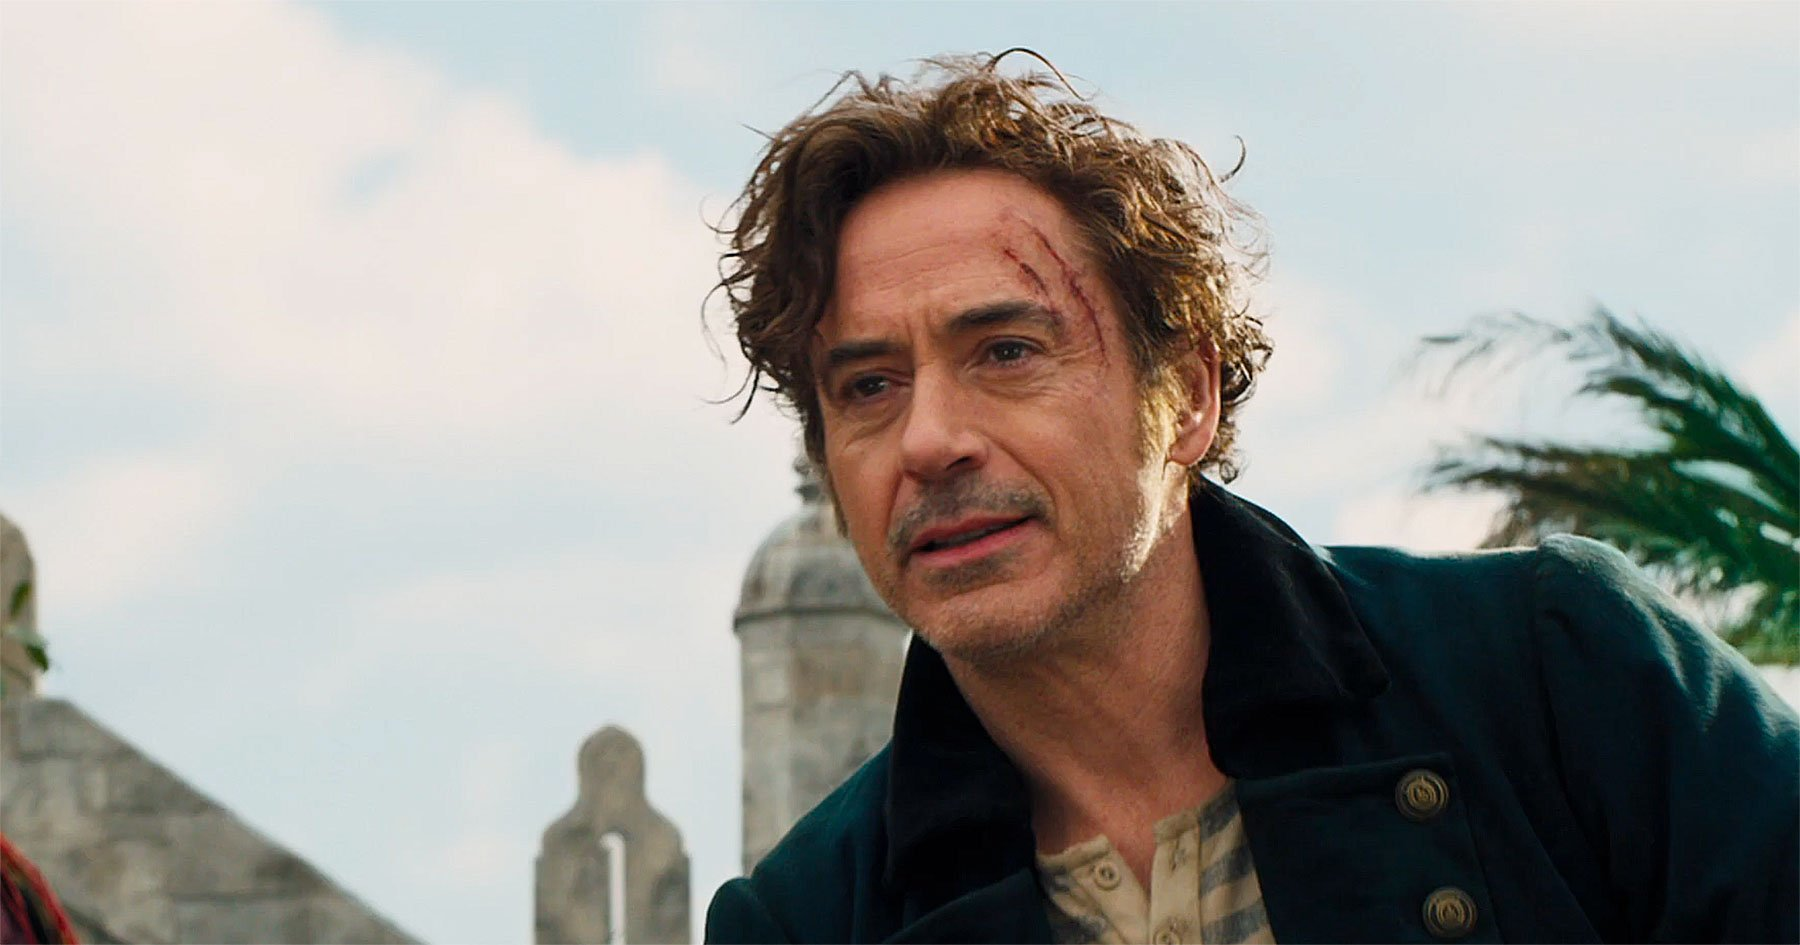 ¡Checa el primer trailer de Robert Downey Jr. como el Dr. Dolittle!